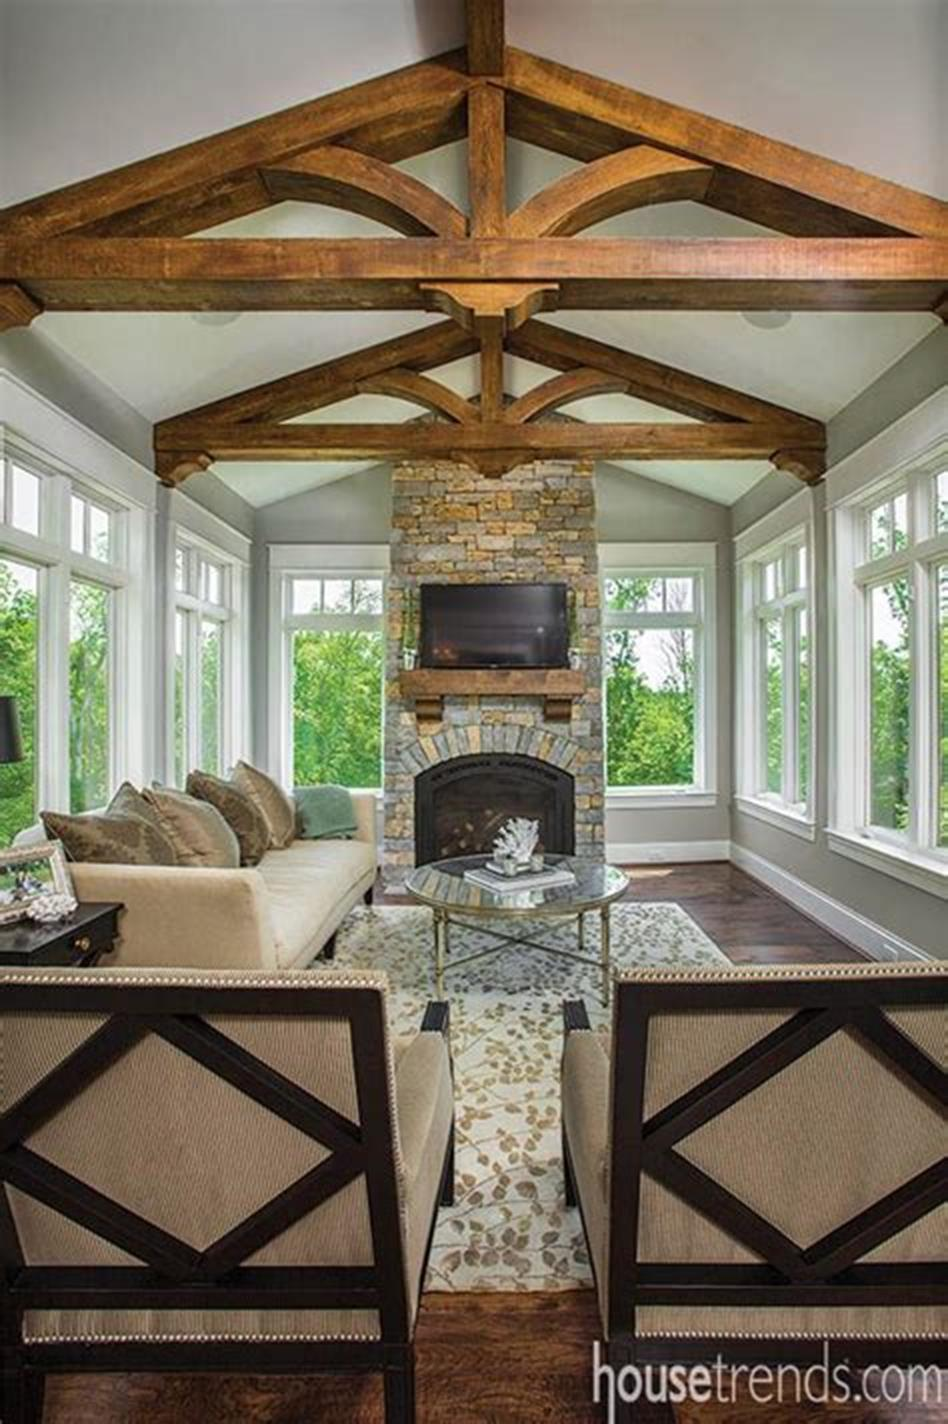 50 Most Popular Affordable Sunroom Design Ideas on a Budget 2